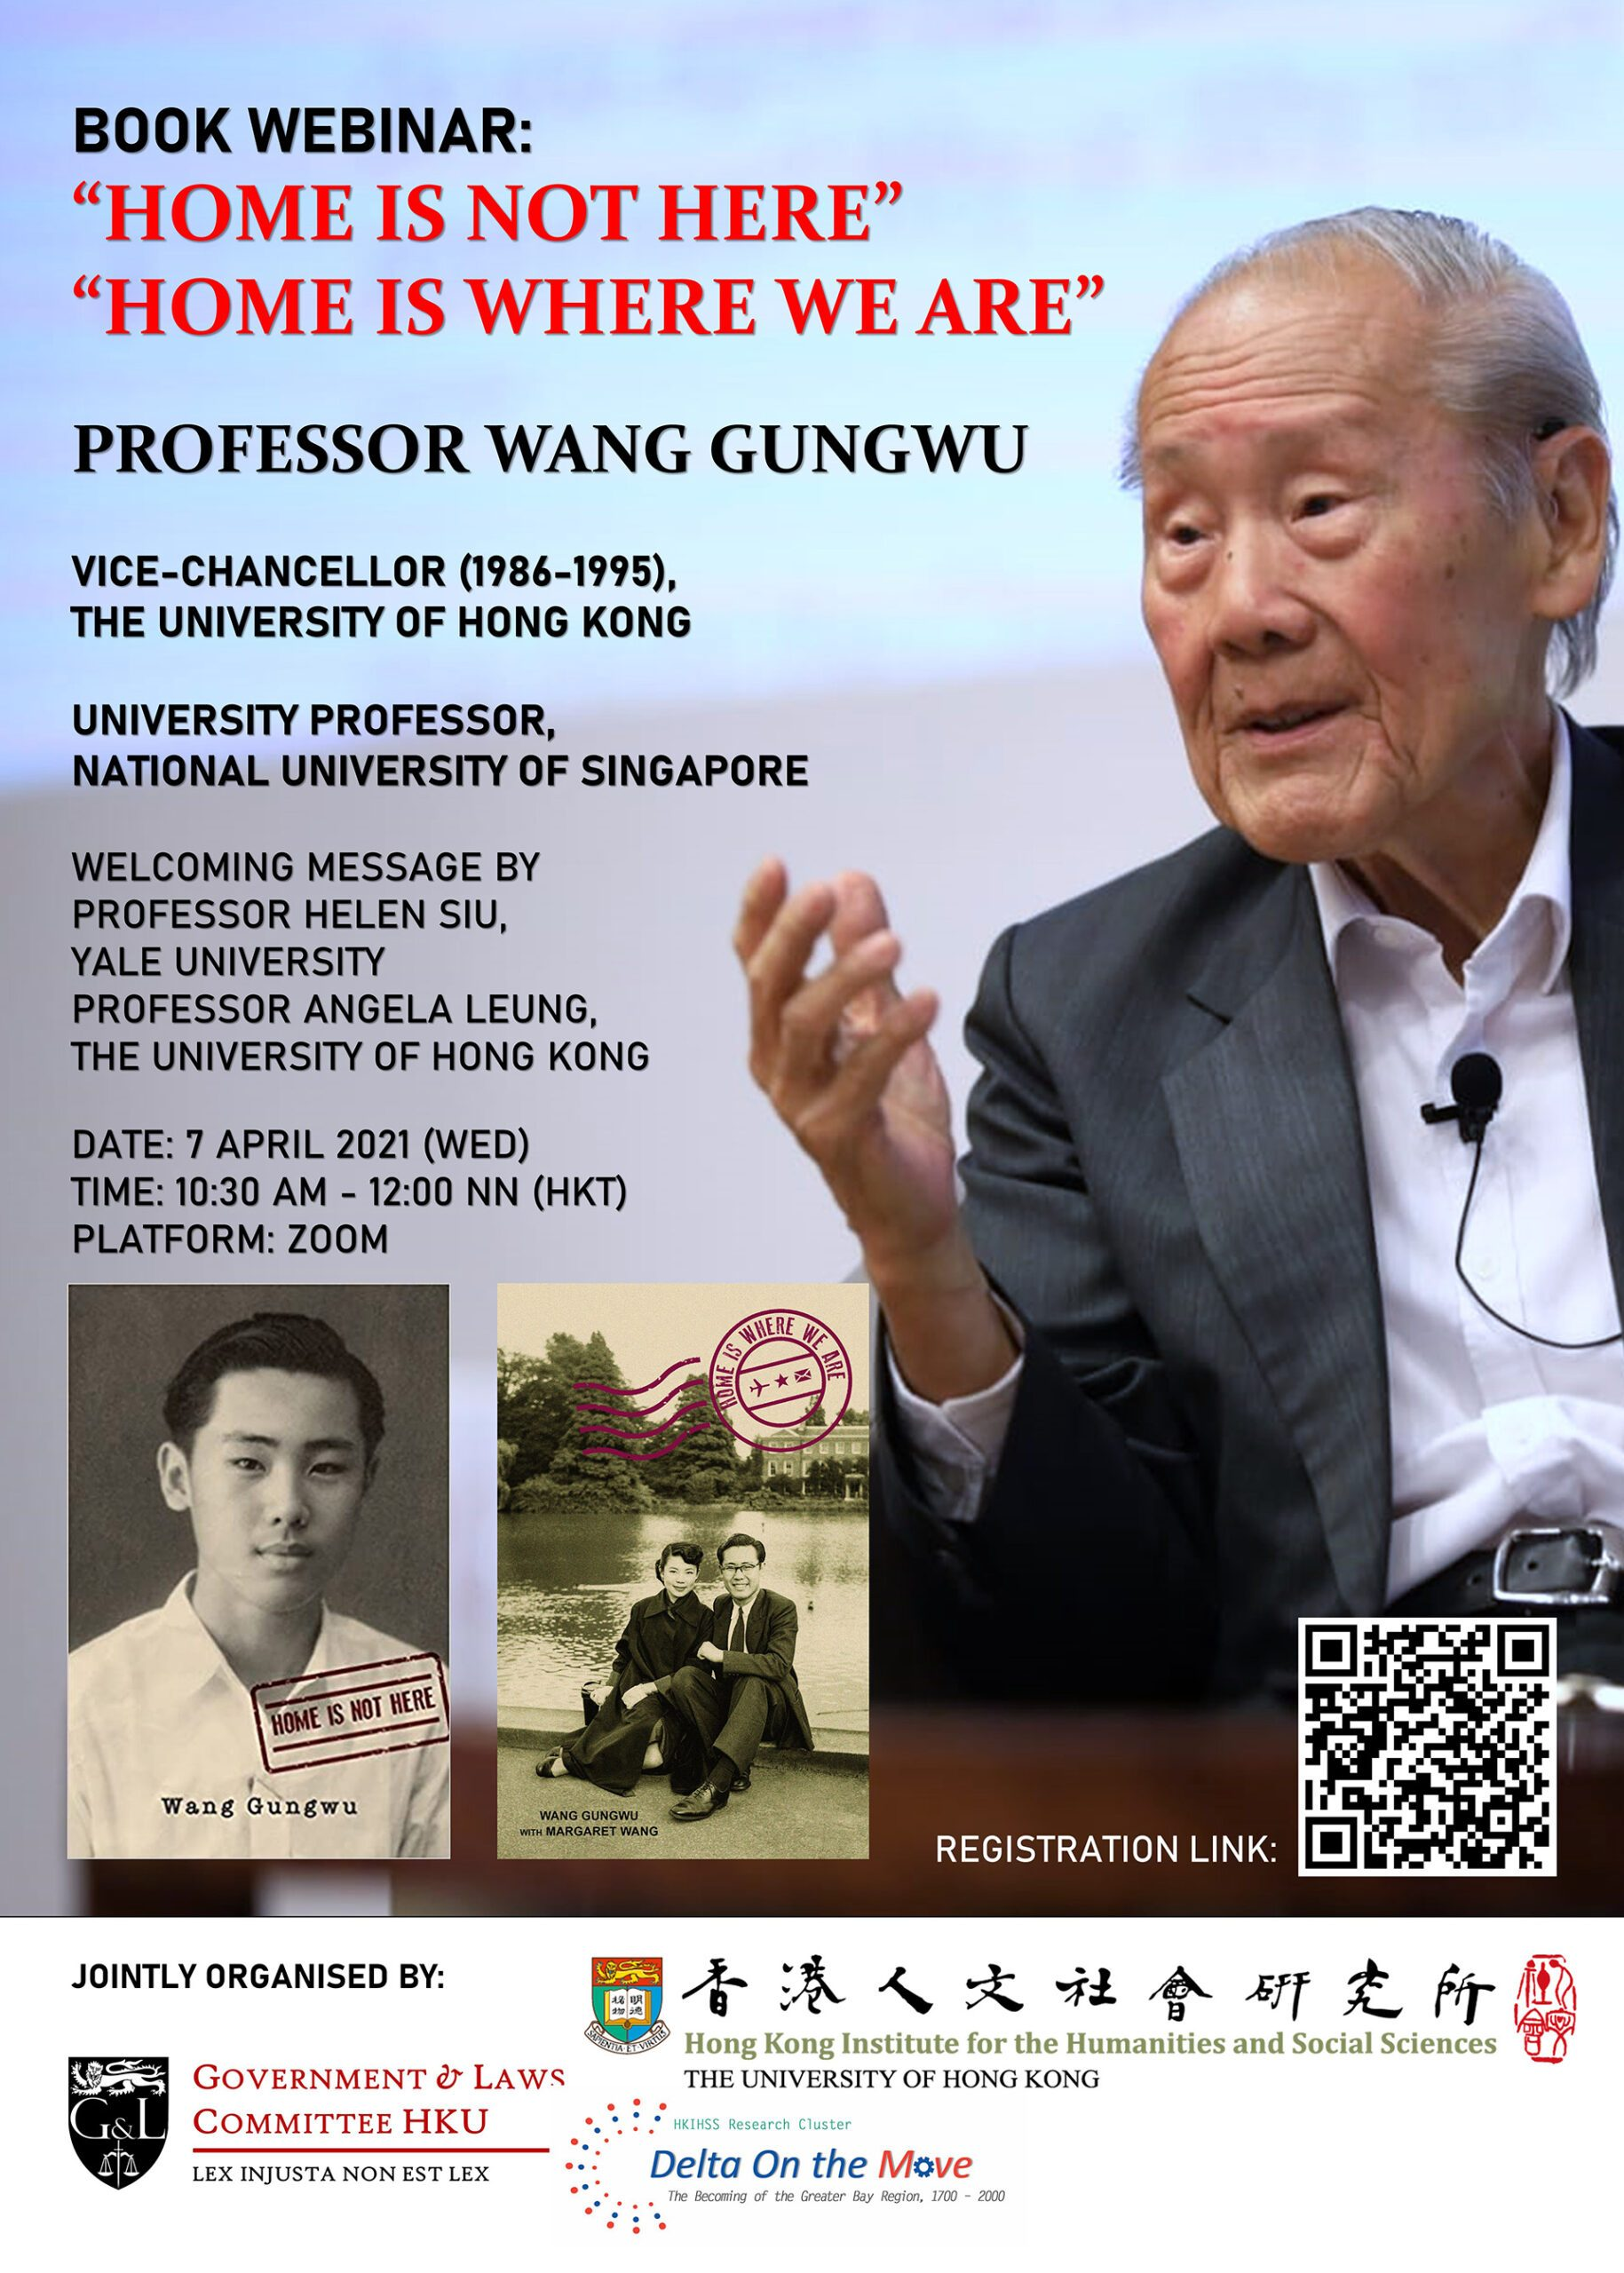 """Book Webinar Home Is Not Here"""" & """"Home Is Where We Are"""" by Professor Wang Gungwu on April 7, 2021"""